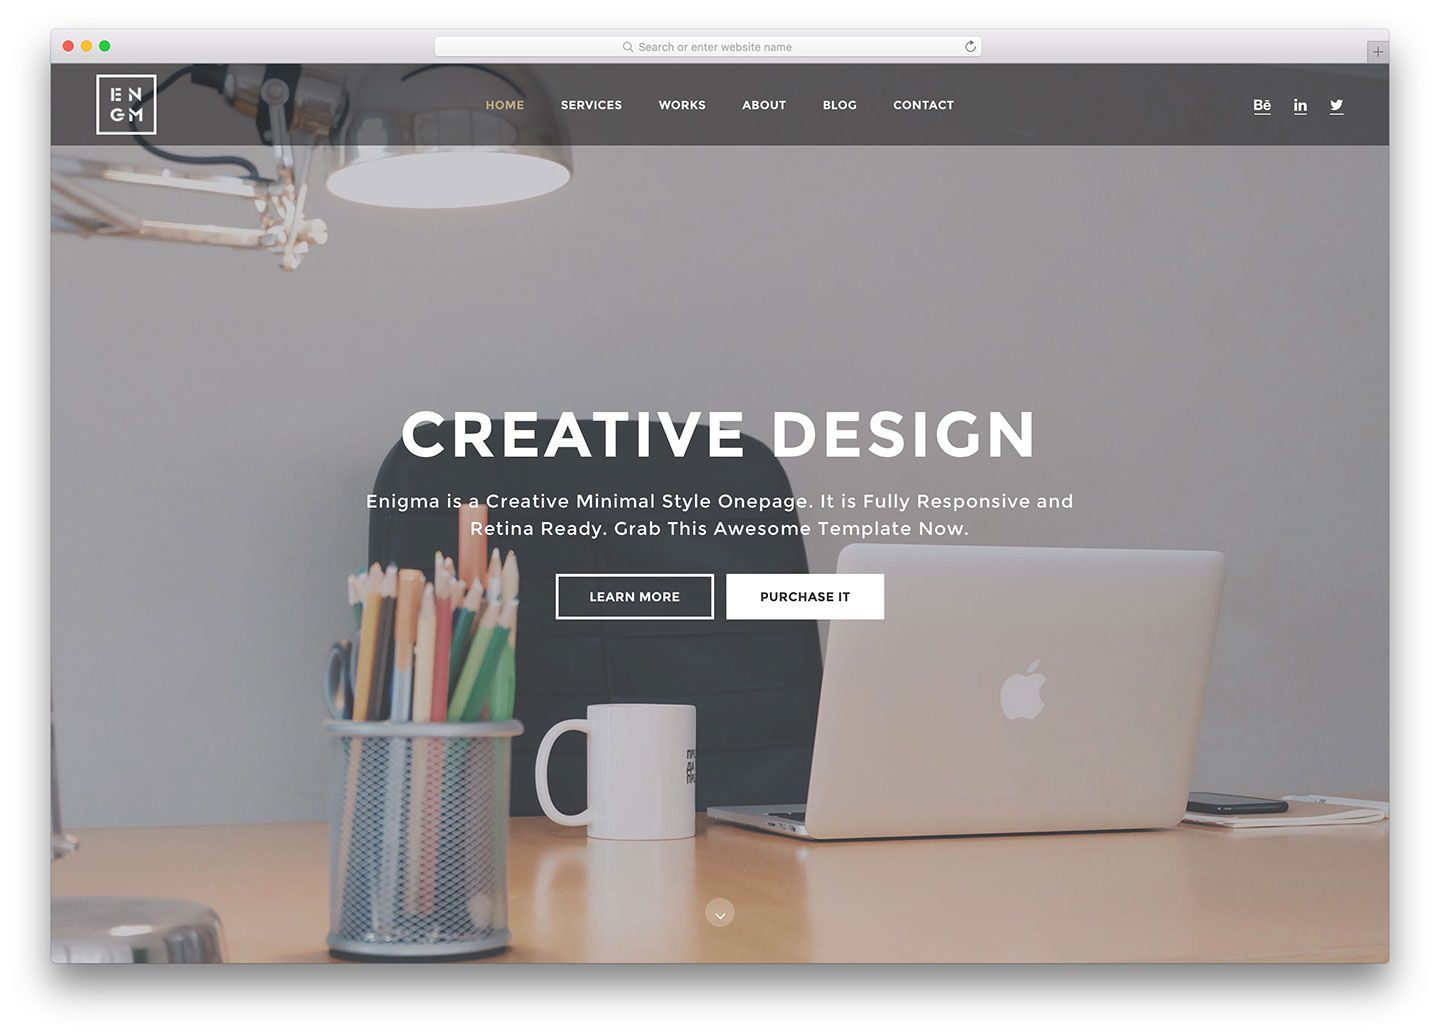 008 Formidable Website Template Html Download High Definition  Free With Cs Javascript Jquery Bootstrap Simple AndFull